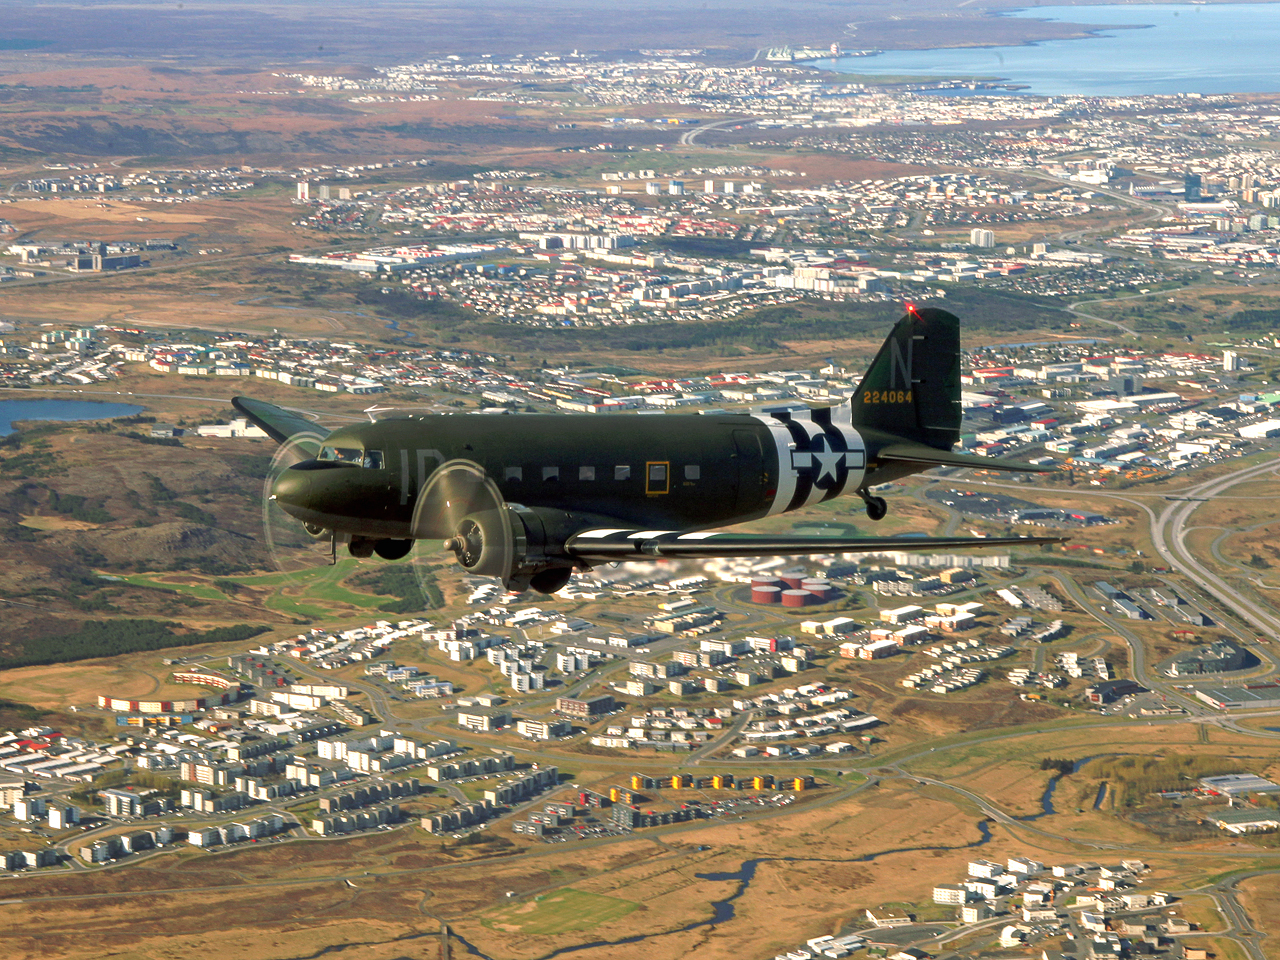 """Union Jack Dak"" over Reykjavik, Iceland during her journey out to France. (photo by Baldur Sveinsson)"